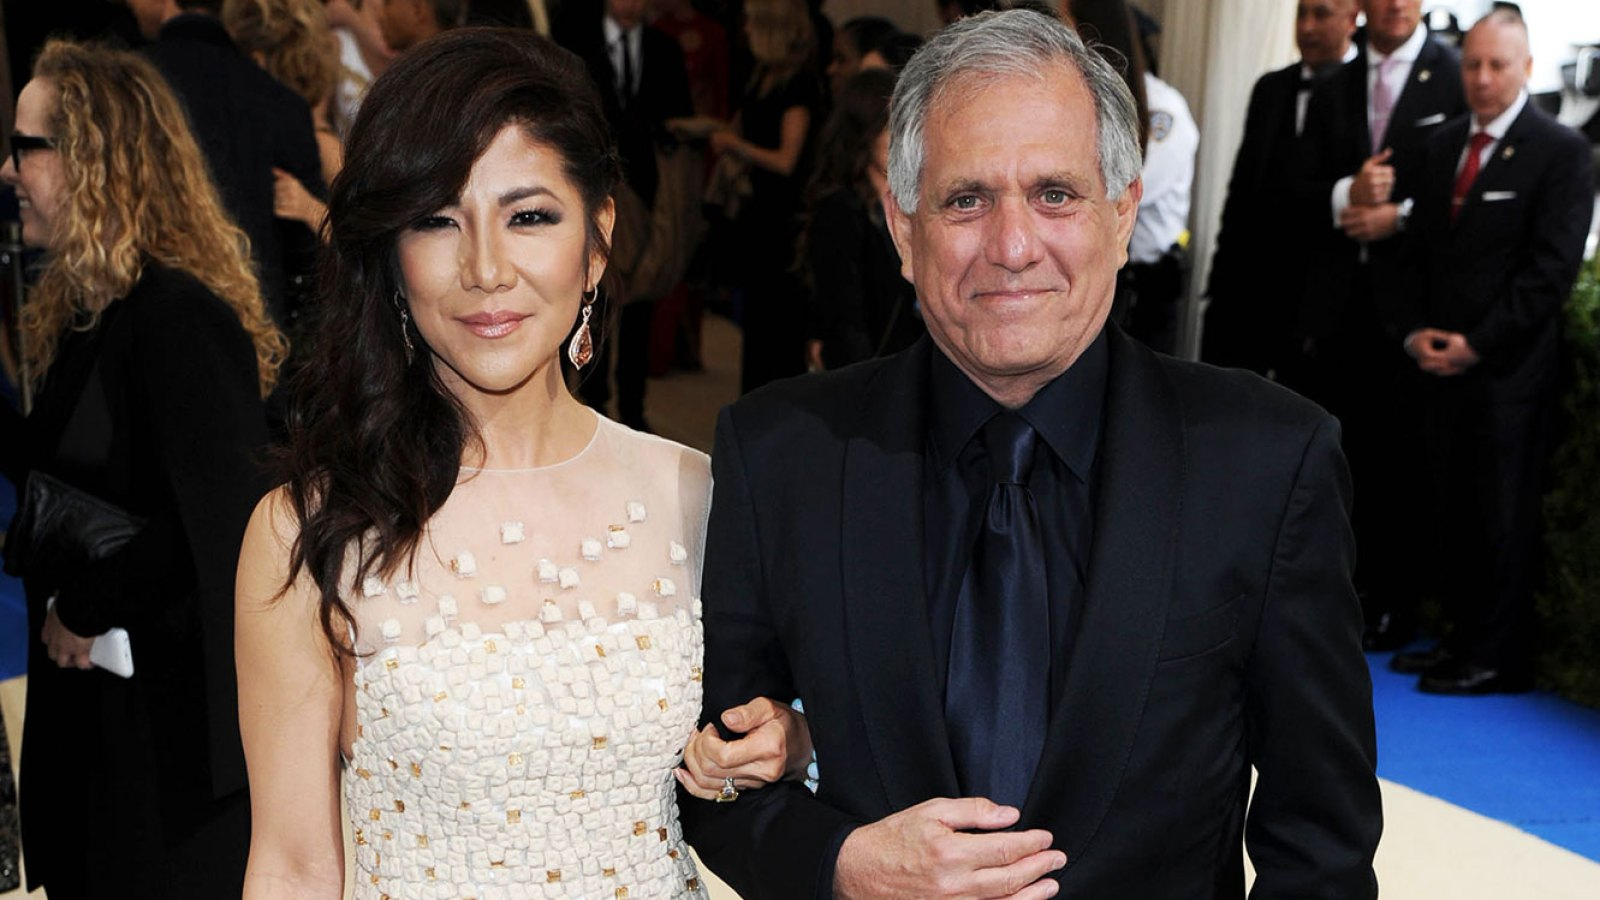 Julie Chen Defends Husband Les Moonves Amid Sexual Misconduct